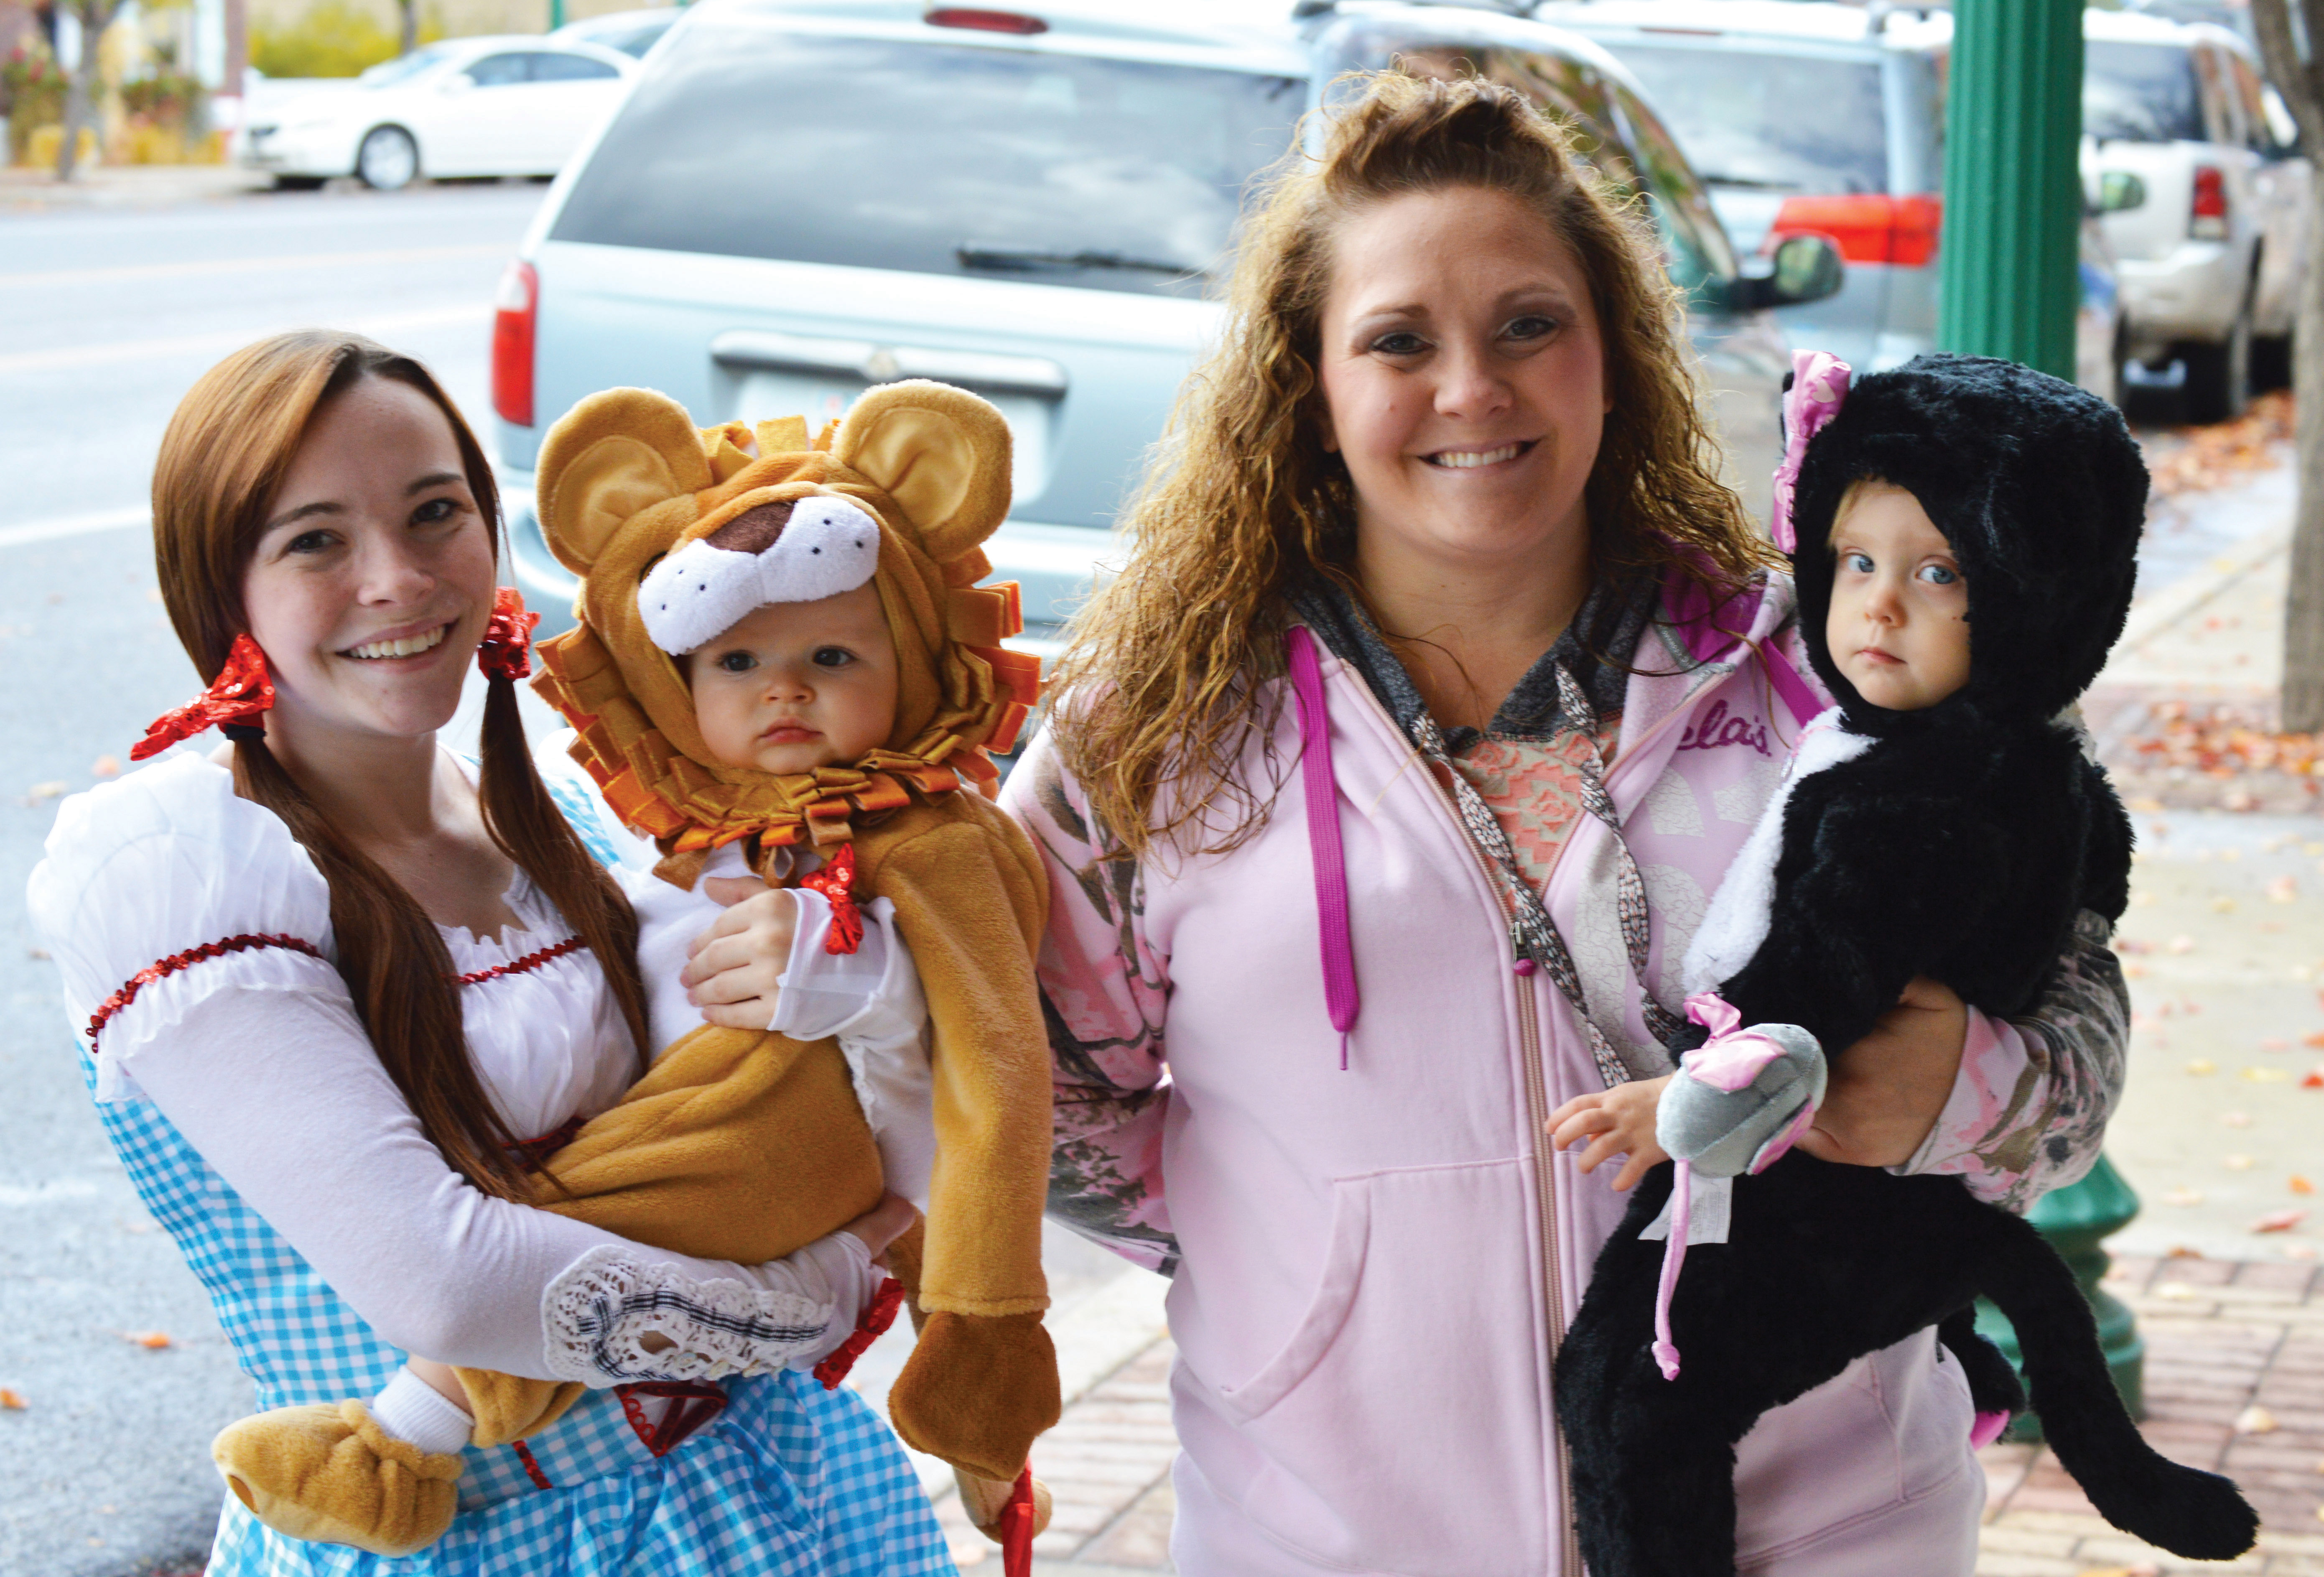 The Mt. Pleasant Elementary school parade had some costumed attendees. Pictured from left to right are Heather and Presley Seely, and Whitney and Gracie Colby. - Robert Stevens ? Messenger photo